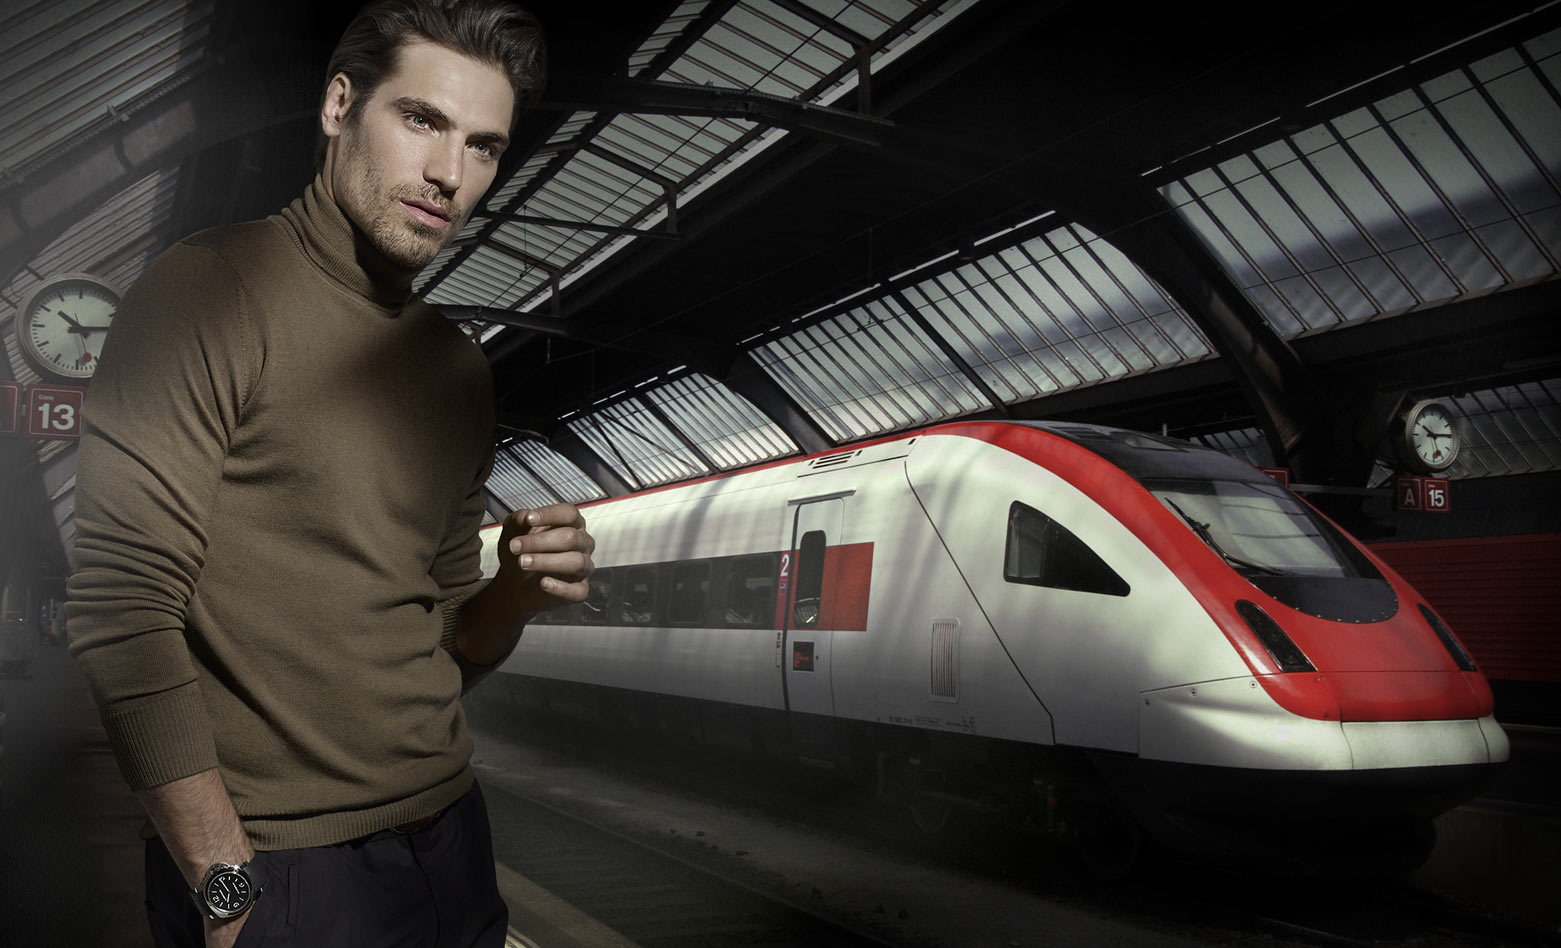 Mark DeLong - Commercial Photography - Man in a green sweater stands near red and white tram.